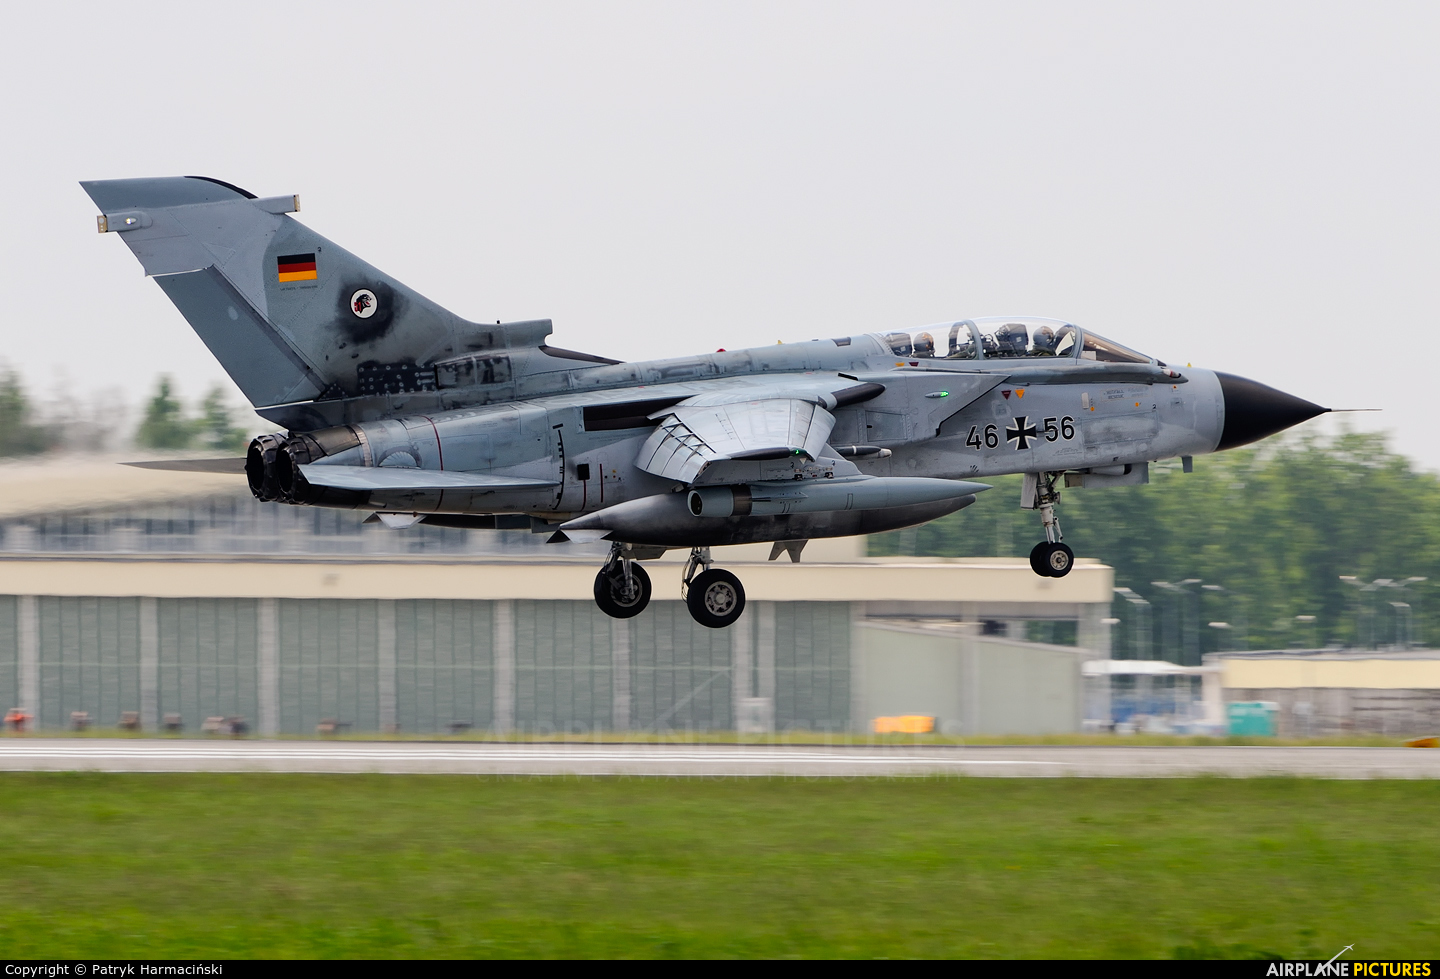 Germany - Air Force 46+56 aircraft at Poznań - Krzesiny